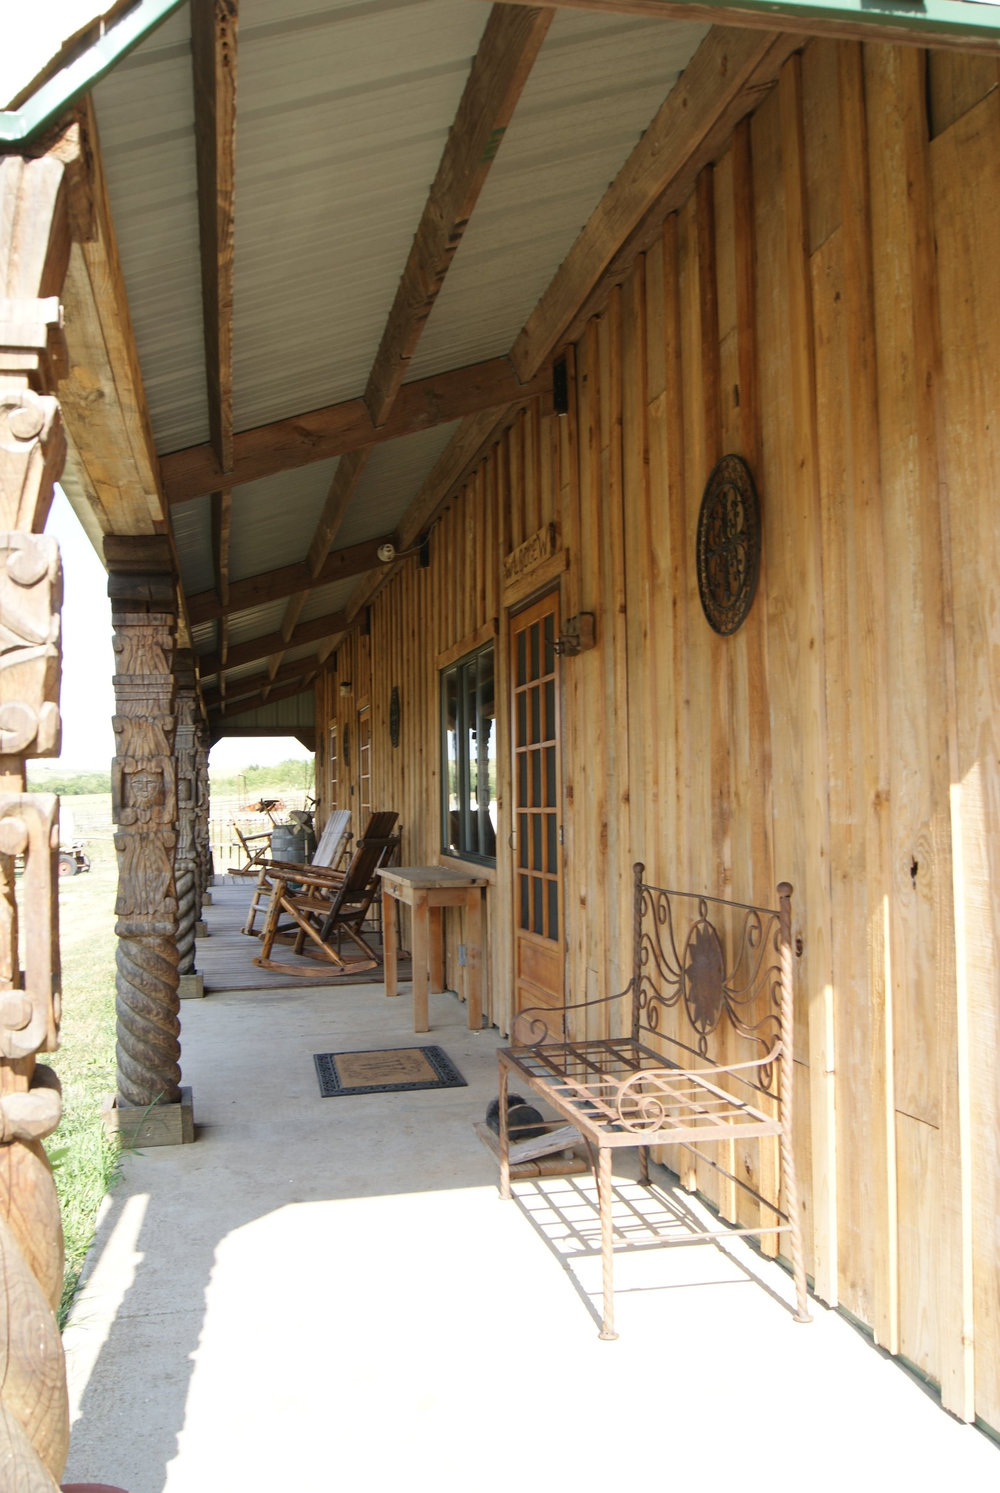 The Lodge front porch